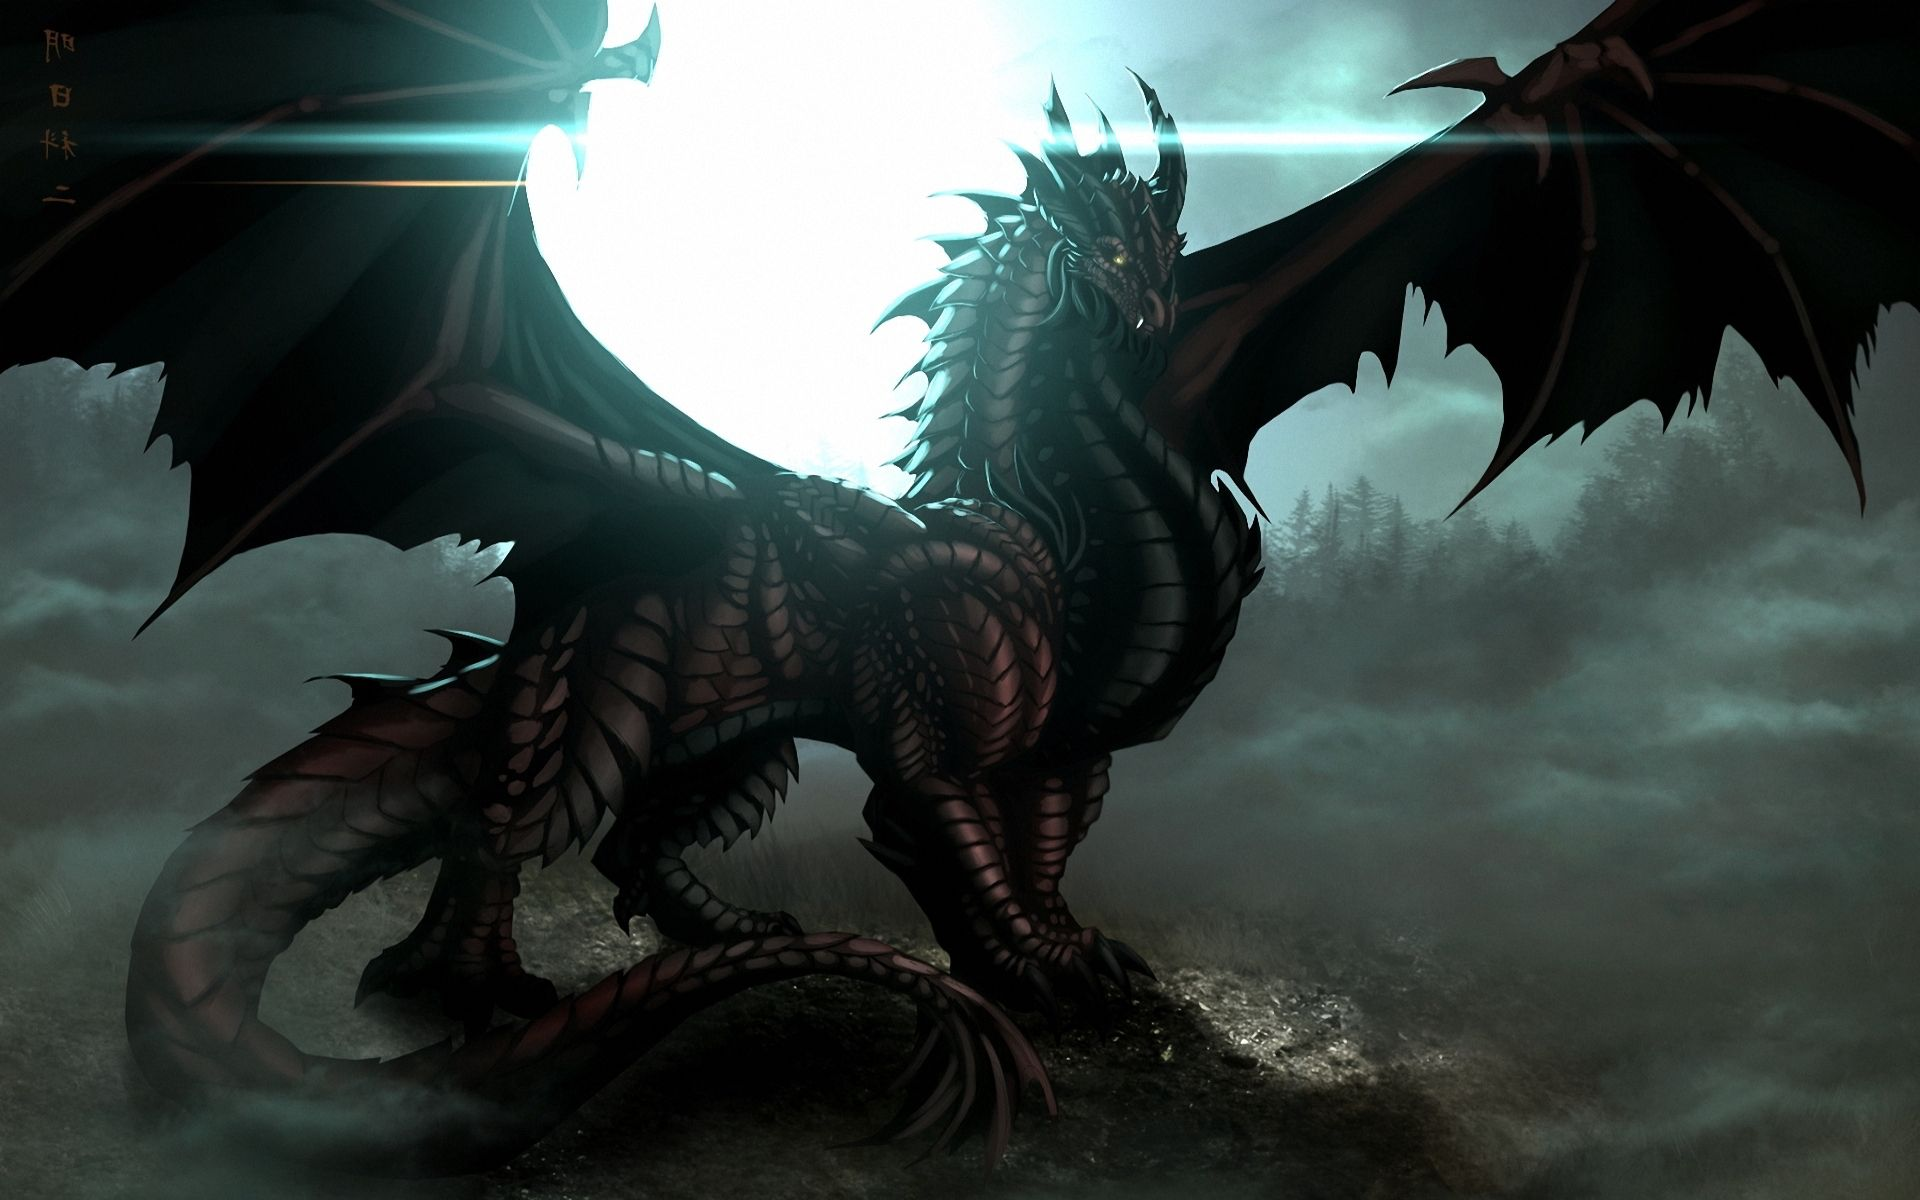 Awesome dragon wallpapers dragons pinterest dragon pictures and wallpaper pictures - Awesome dragon pictures ...